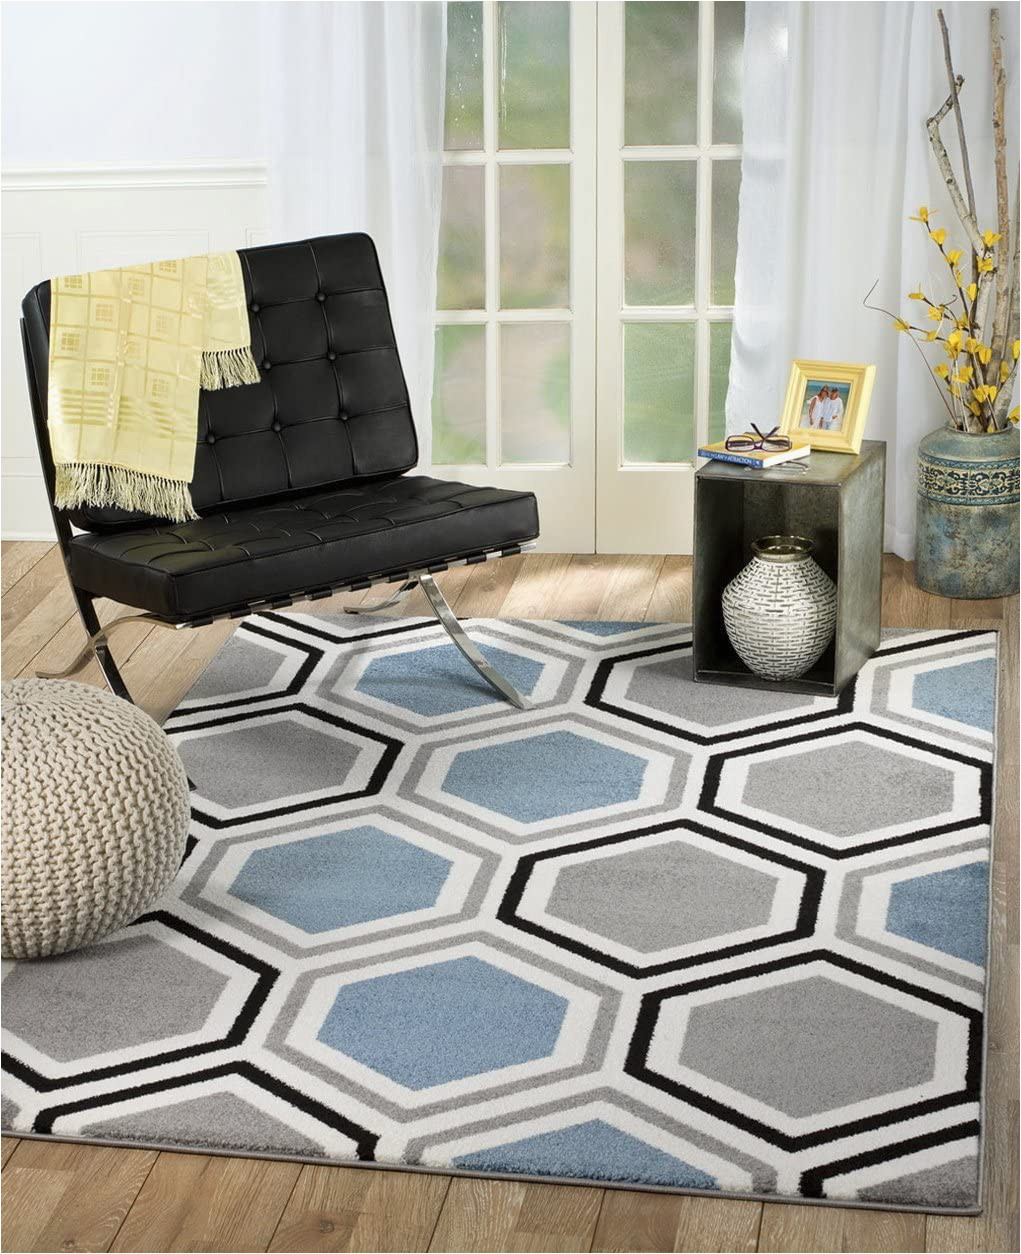 """Blue Grey and White area Rug Rio Summit 313 Grey Blue White area Rug Modern Geometric Many Sizes Available 5 X 7 2"""" 5 X 7 2"""""""